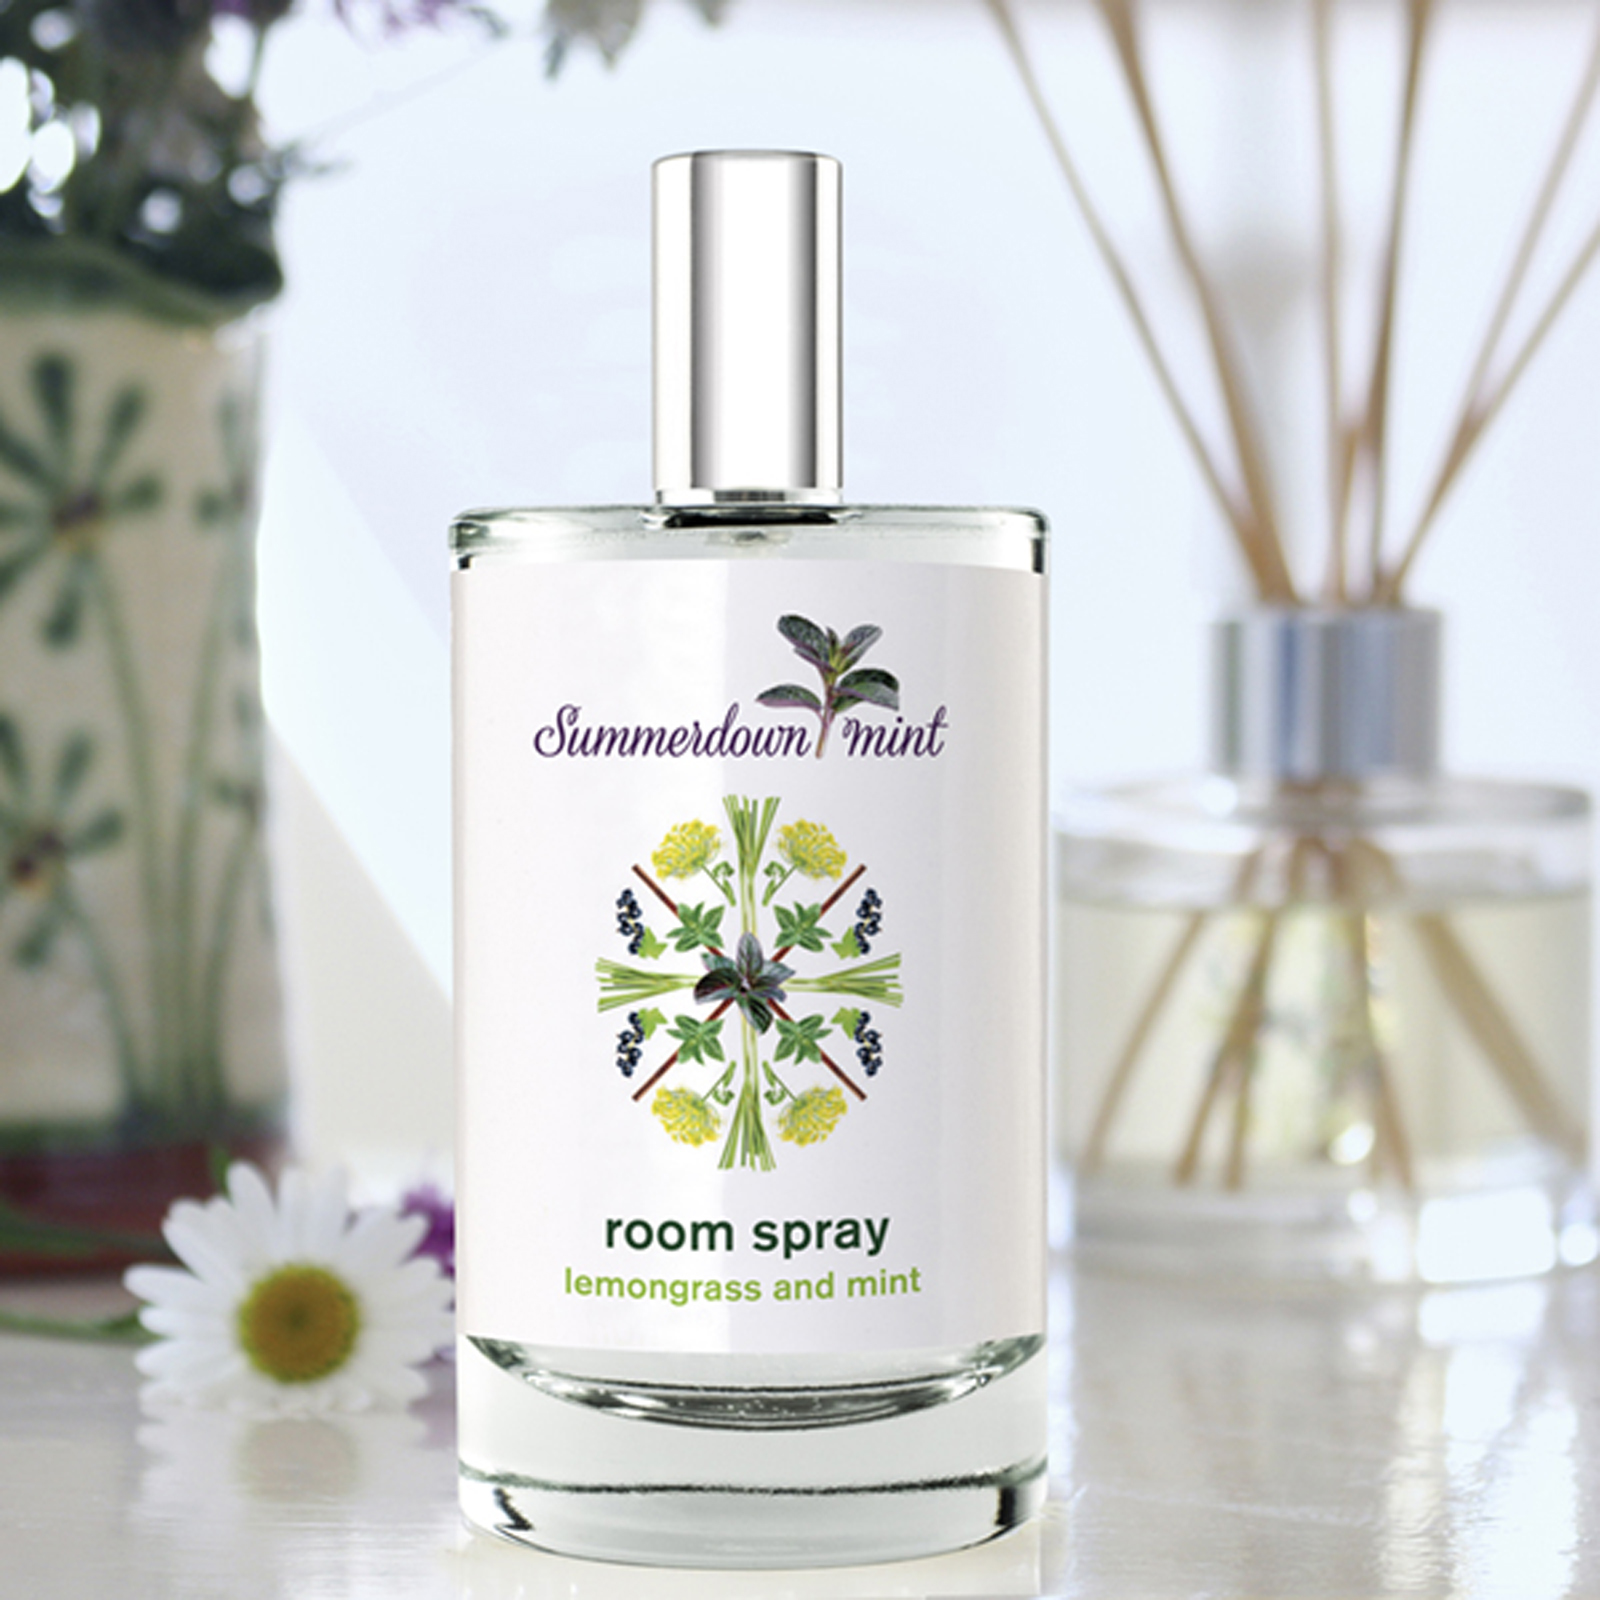 Lemongrass and Mint Room Spray by Summerdown Mint